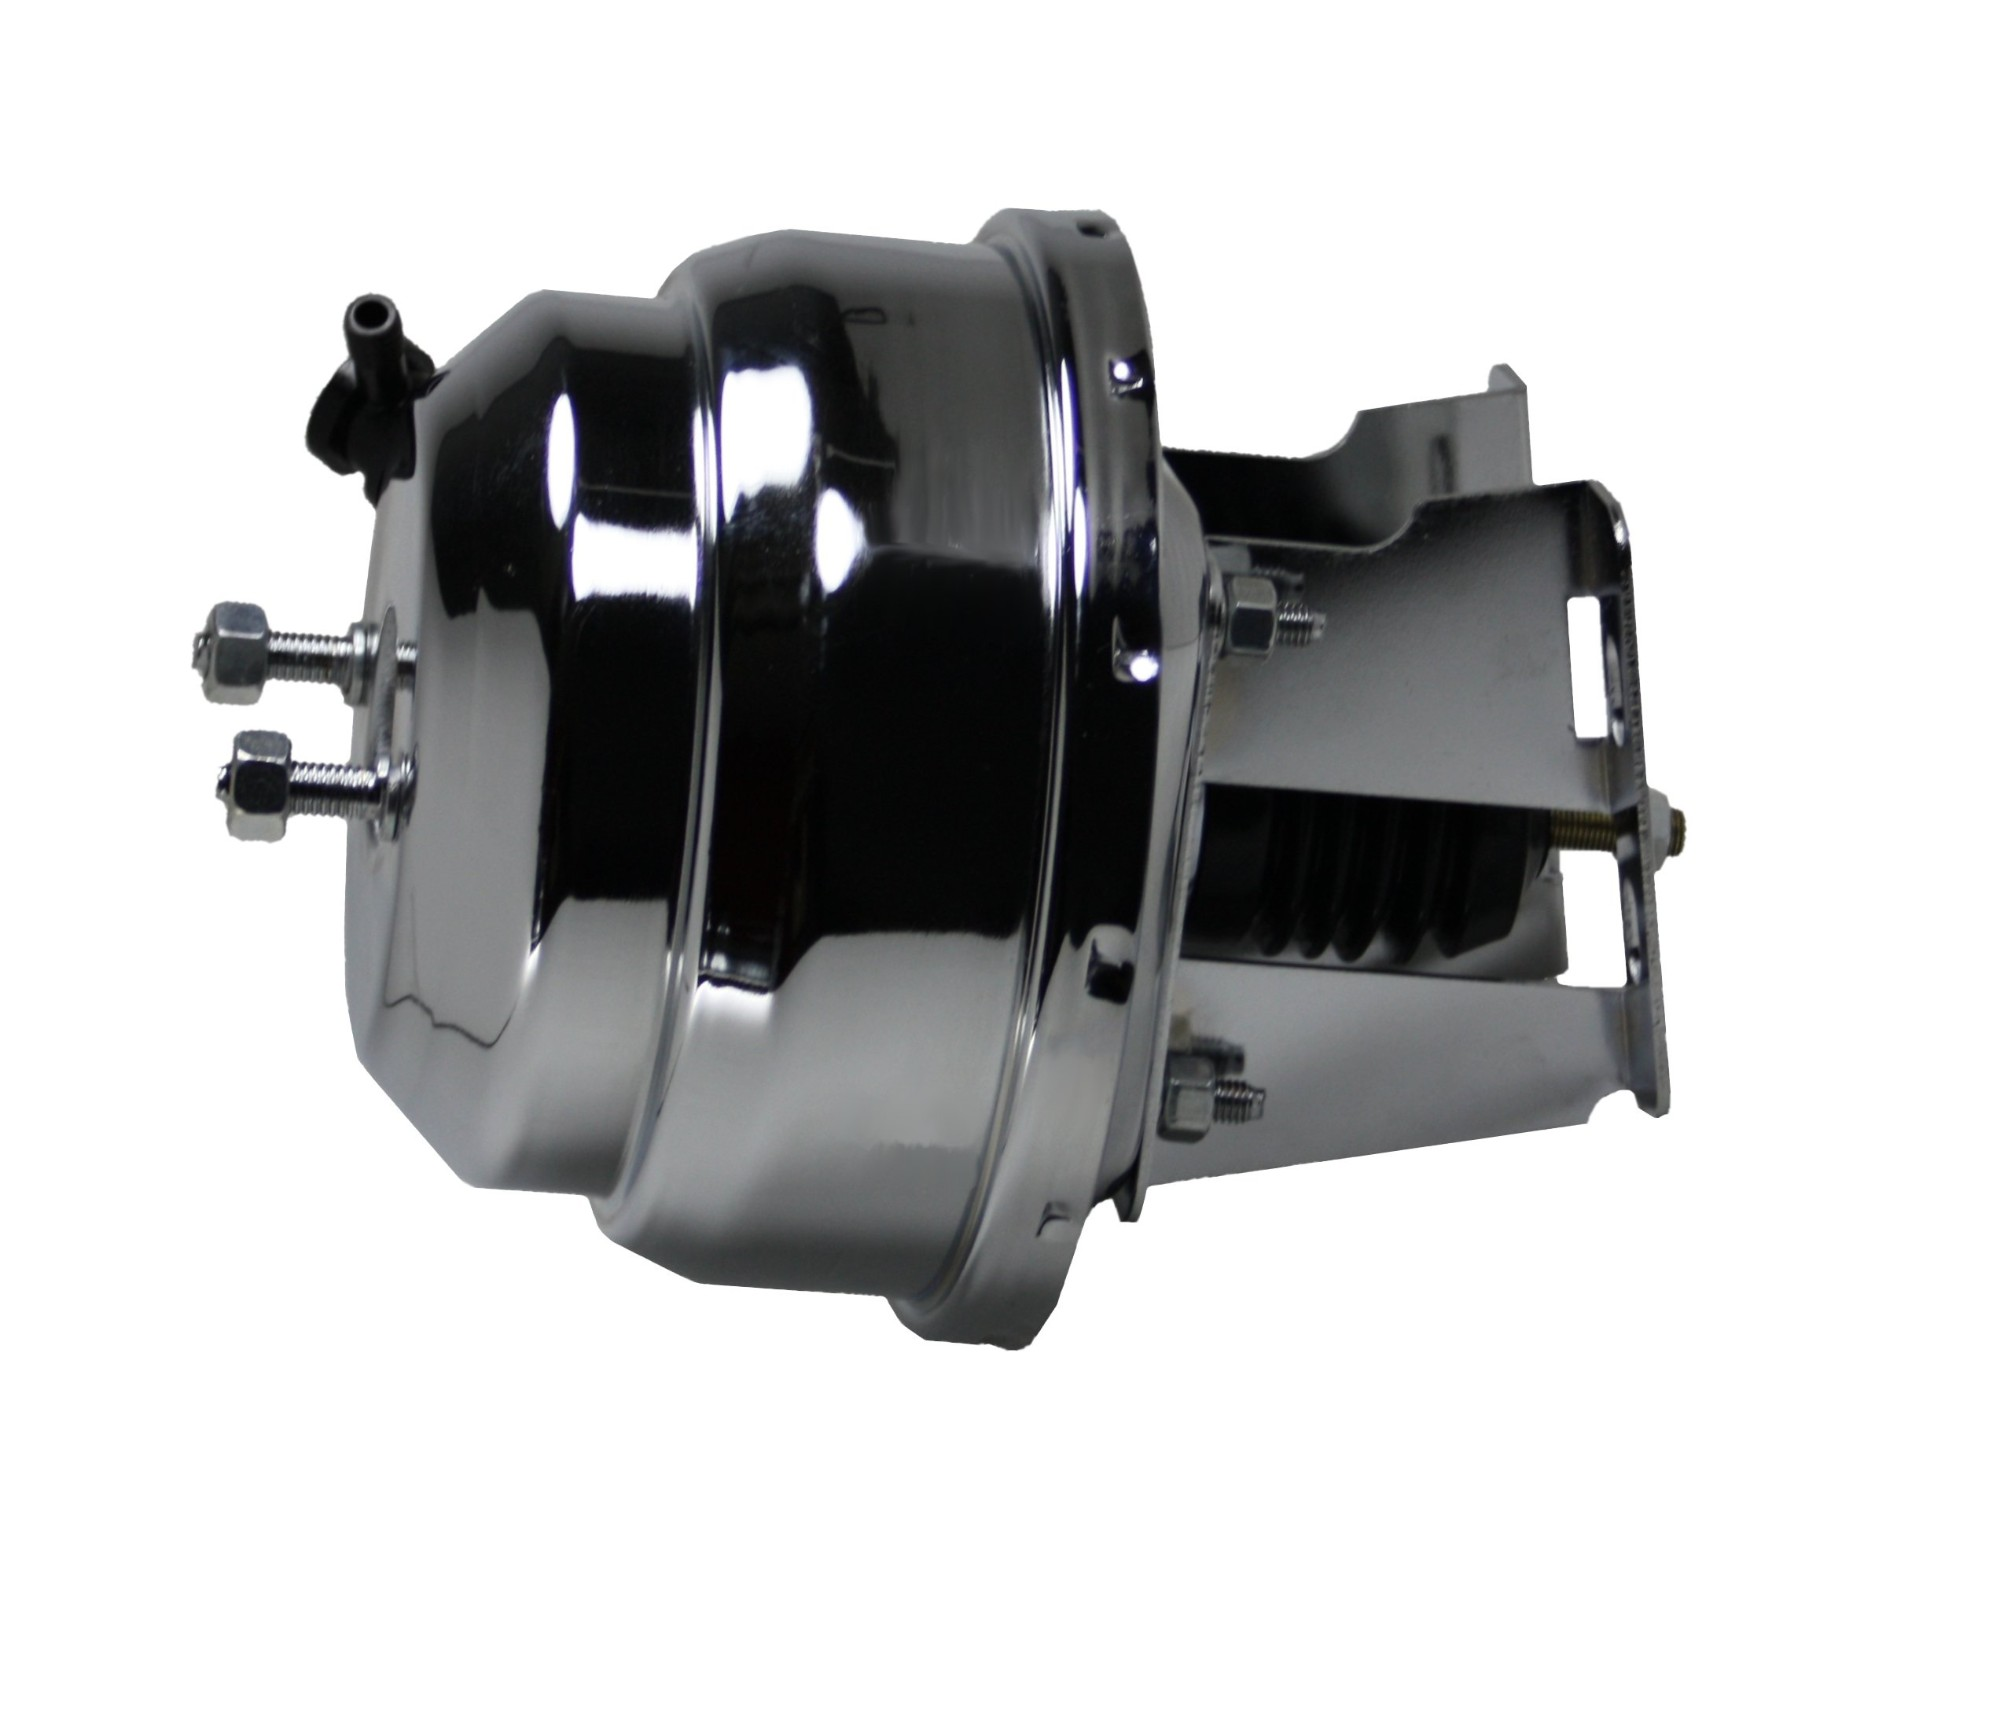 LEED Brakes 4V 8 in Dual Power Booster (Chrome)